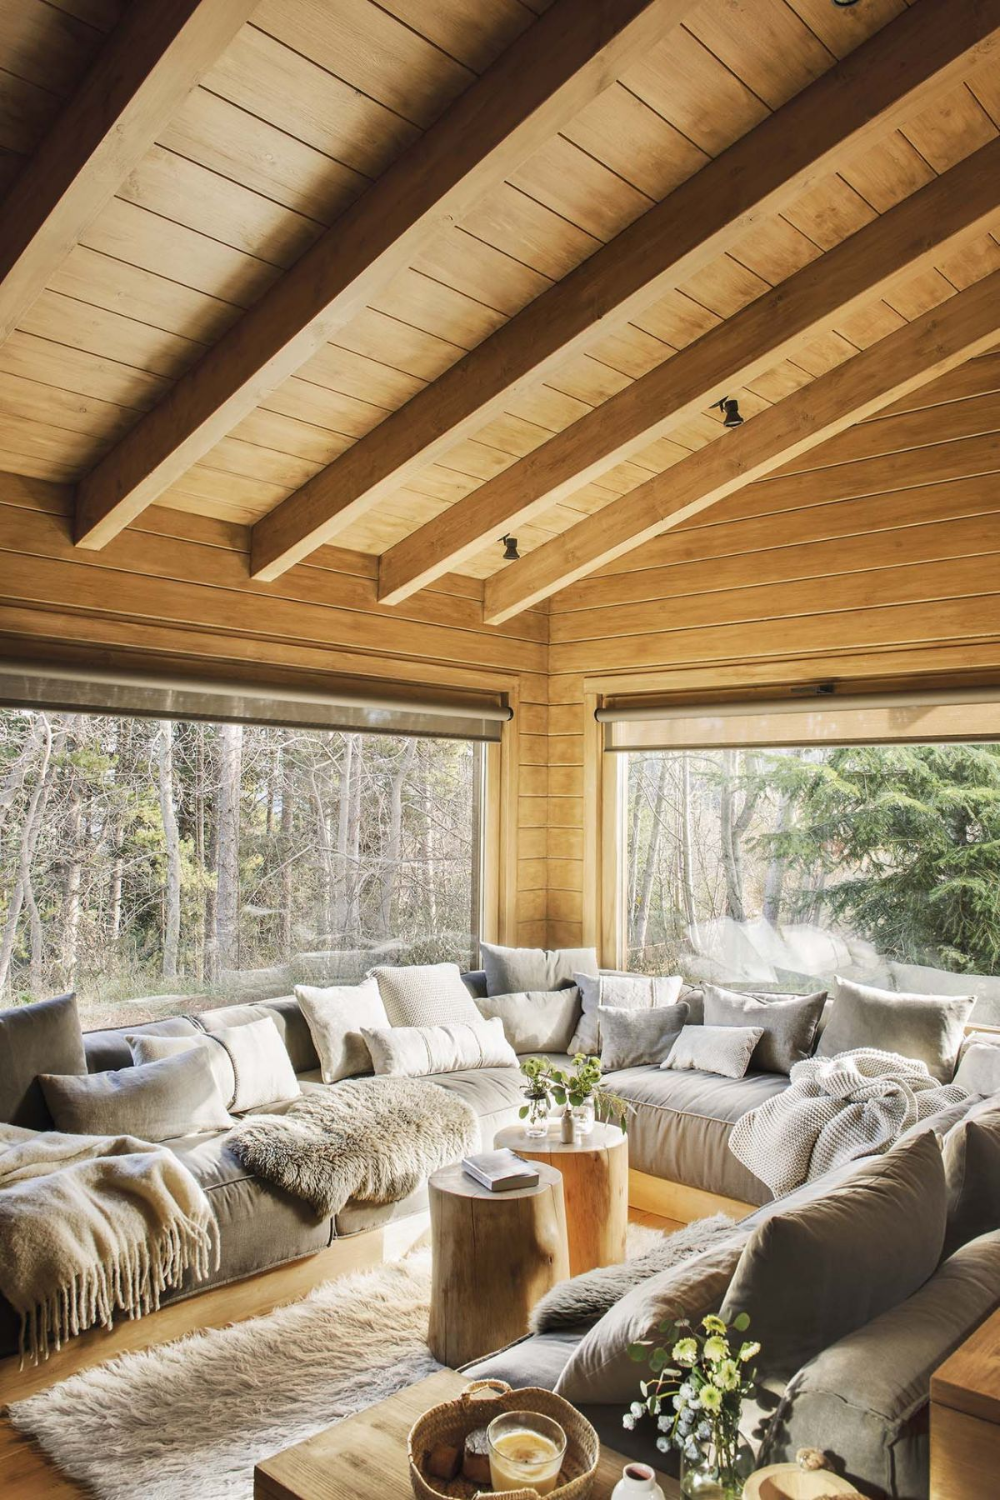 Photo of Dreamy rustic cabin interior design living room – Home Decorating Trends – Homedit